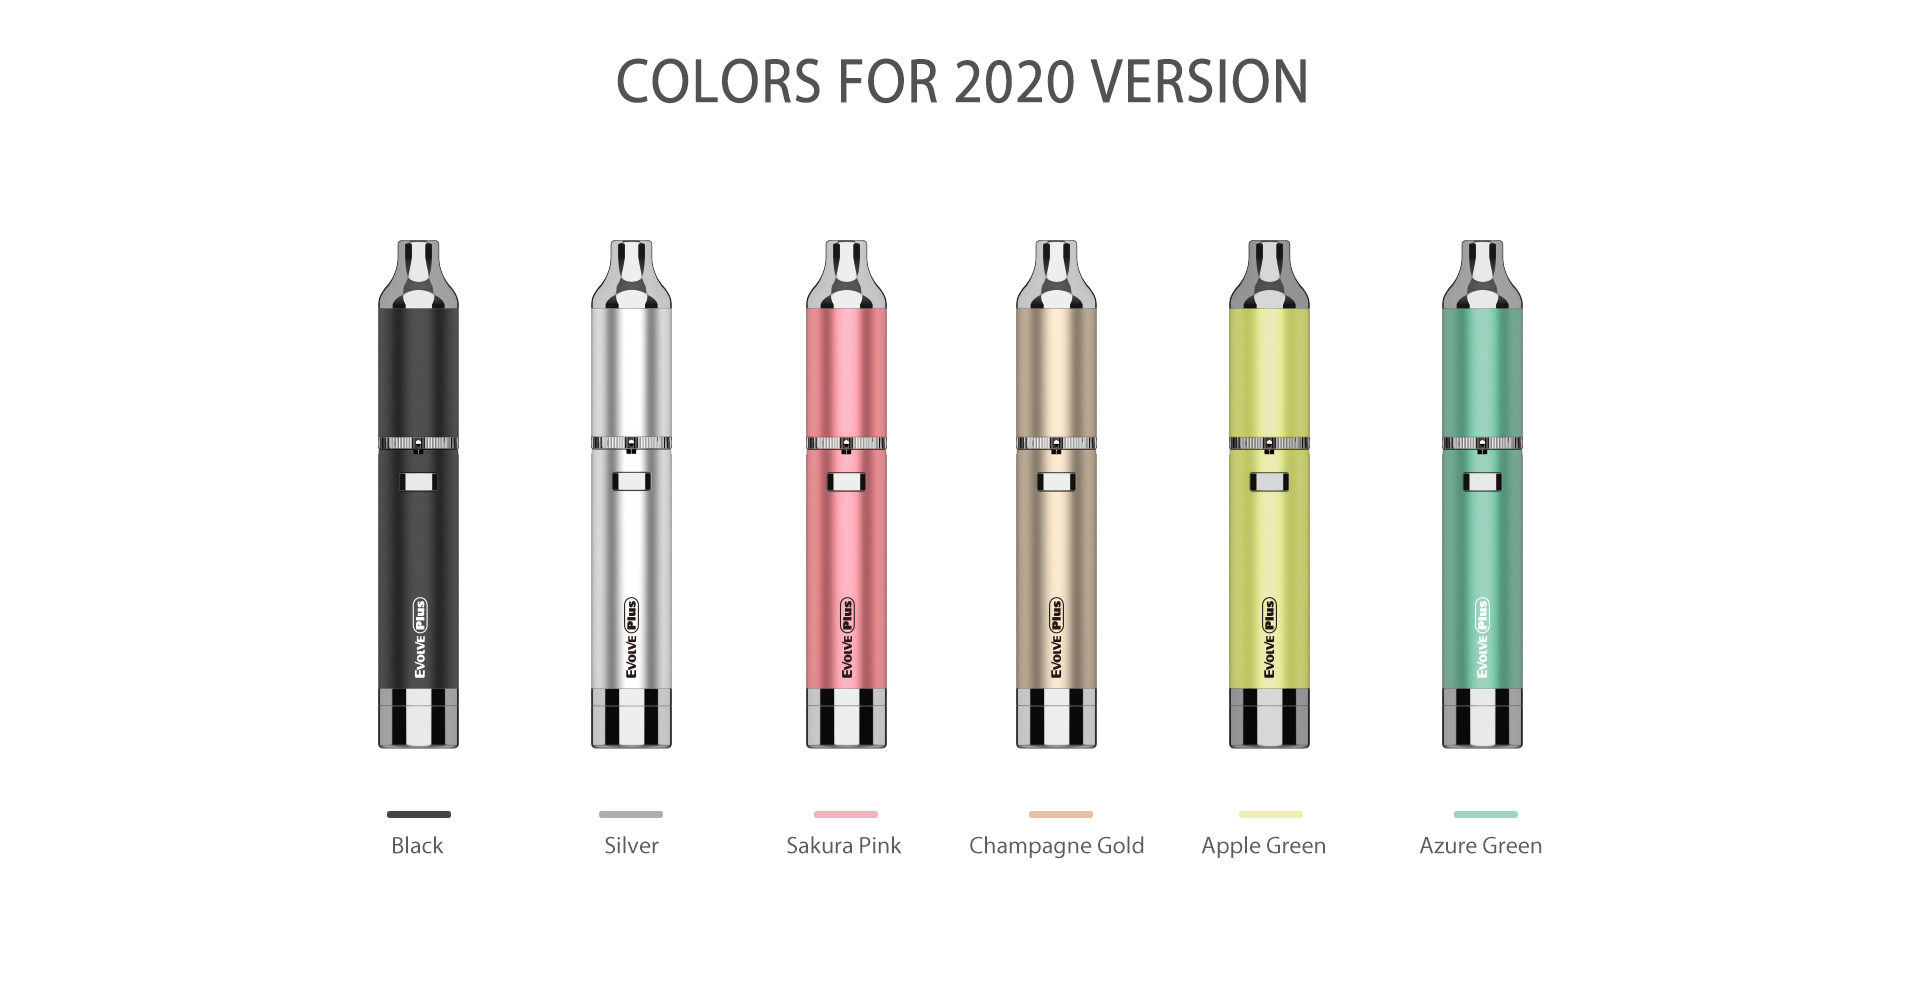 Yocan Evolve-Plus vaporizer pen 2020 version has 6 new colors.